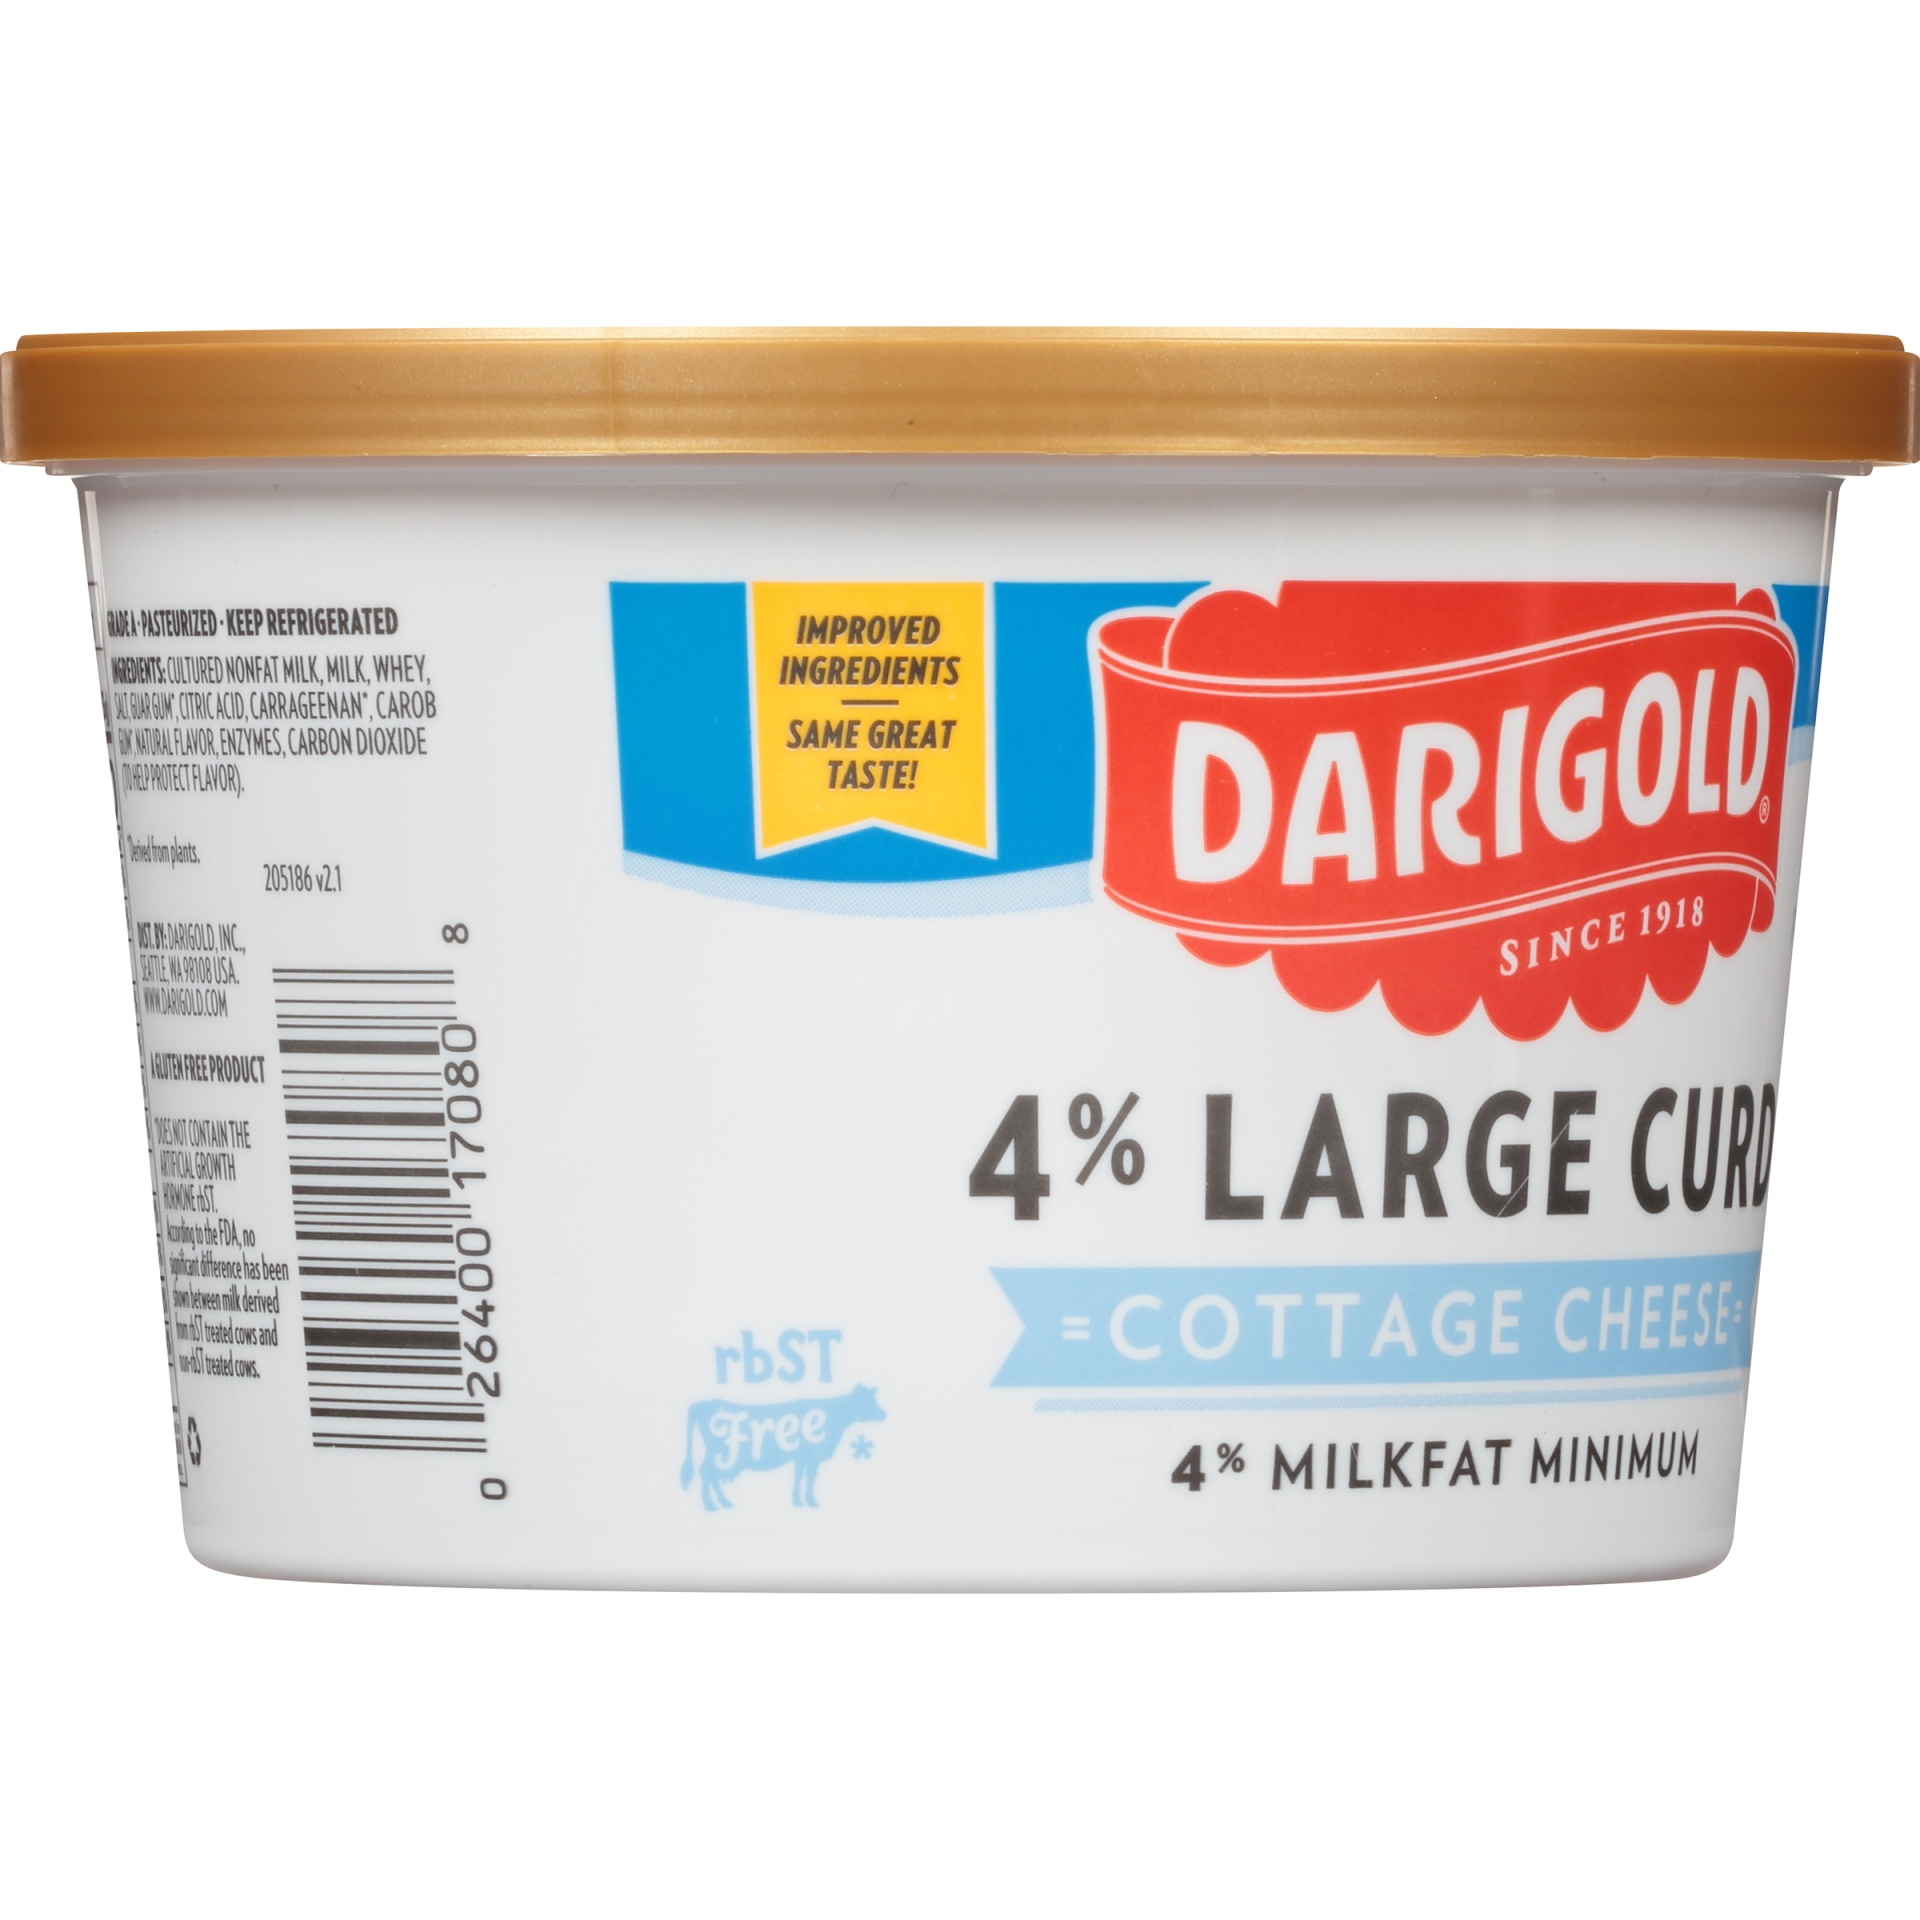 slide 4 of 6, Darigold 4% Large Curd Cottage Cheese,